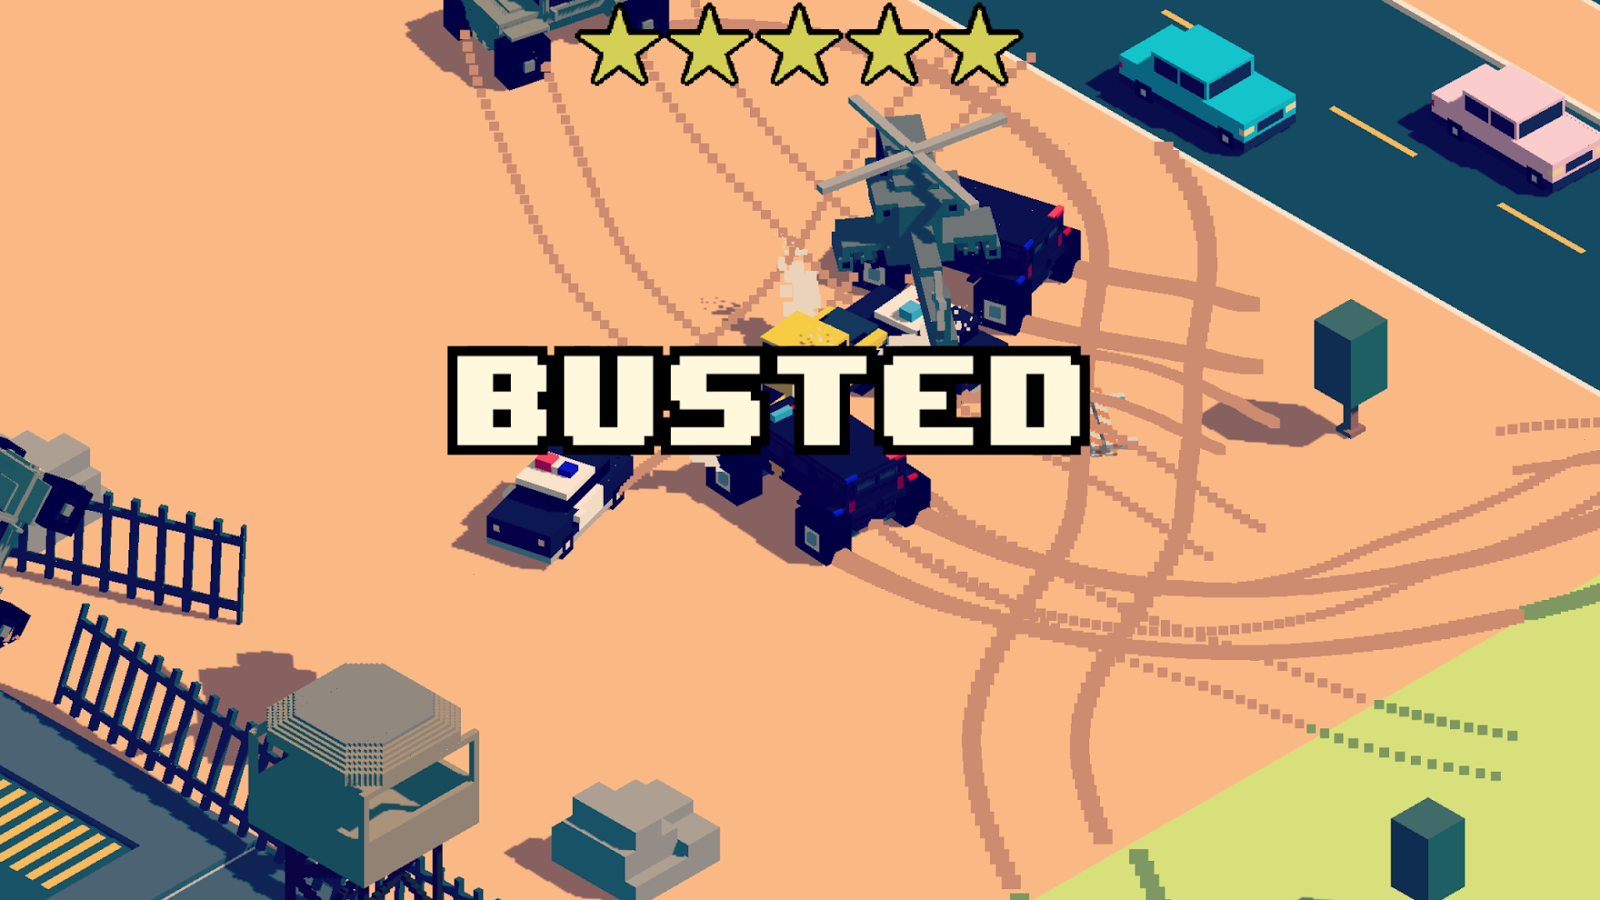 News online mobil free android game smashy road wanted gta all you need to do is steer left and right avoid the police cars trying to ram you once you are able to maneuver you can ram back at the police sciox Image collections